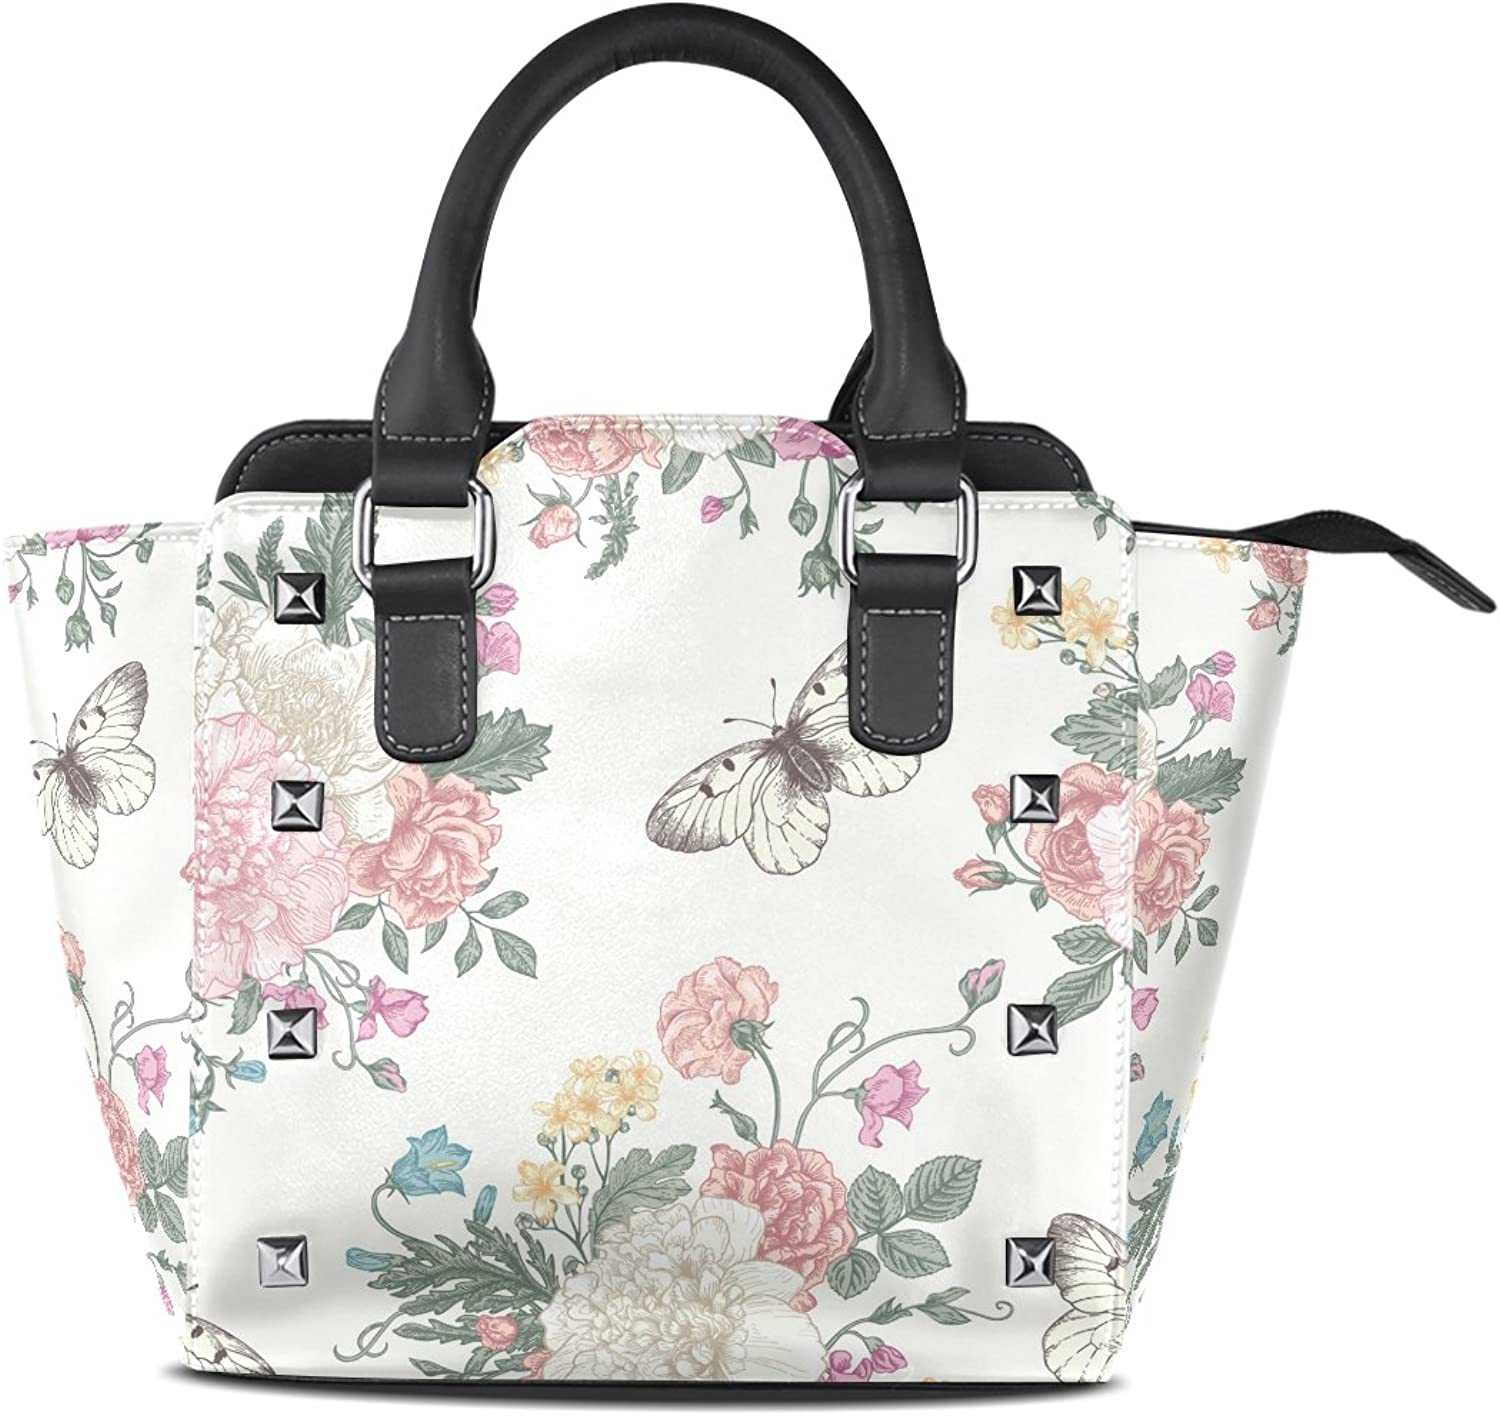 Sunlome Retro Flowers And Butterflies Print Handbags Women's PU Leather Top-Handle Shoulder Bags